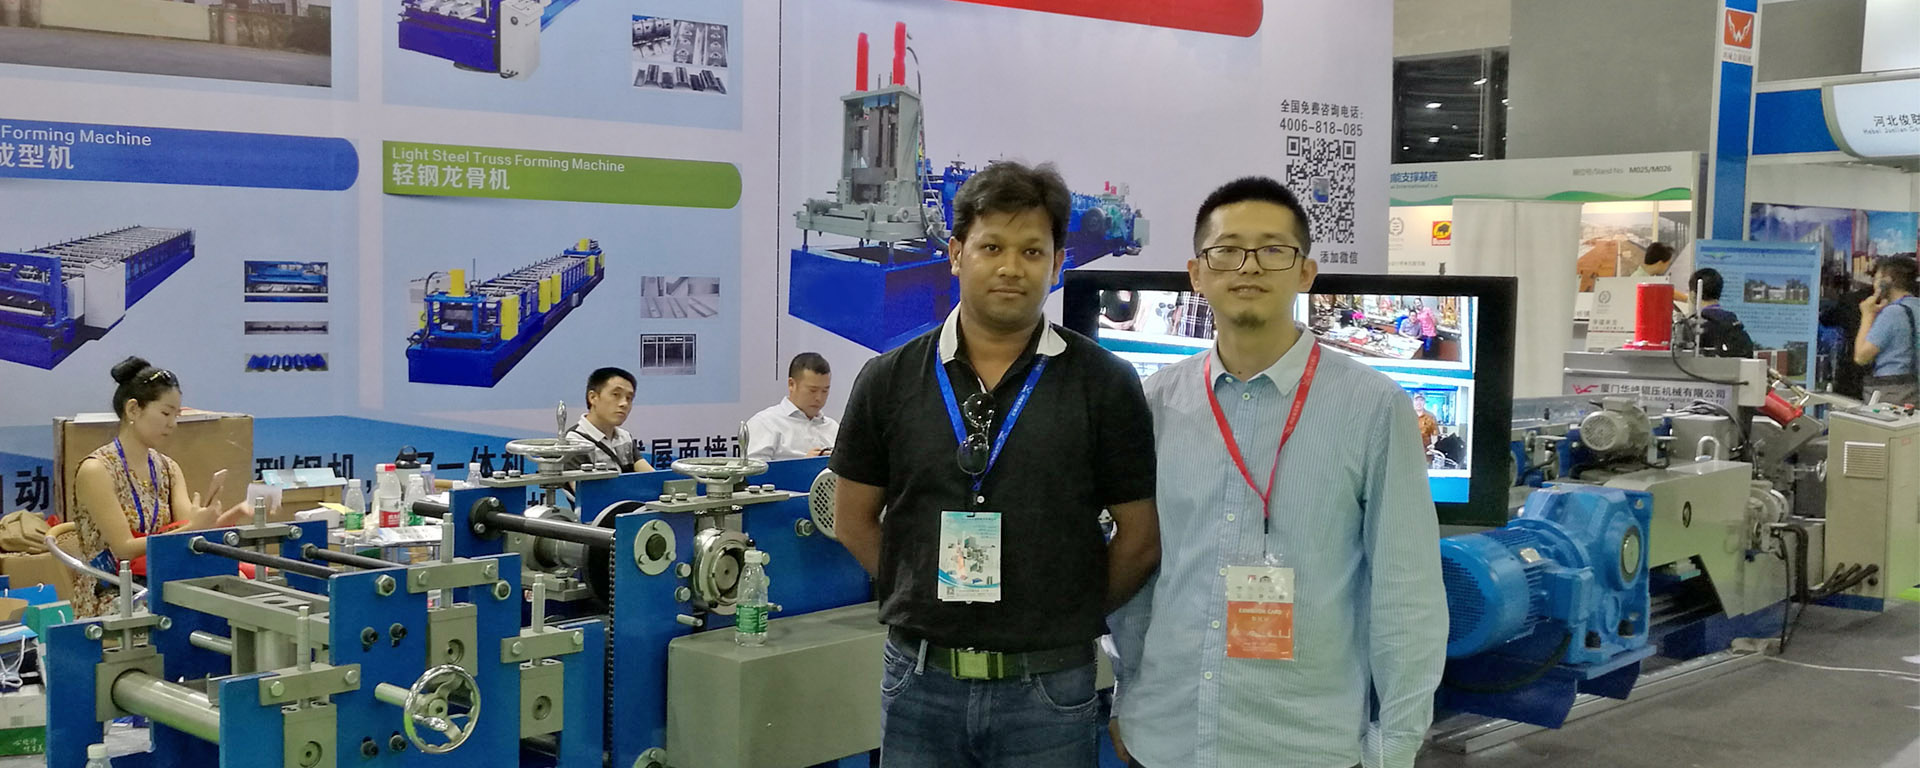 TATA Steel Engineer visit Roll Forming Machinery booth